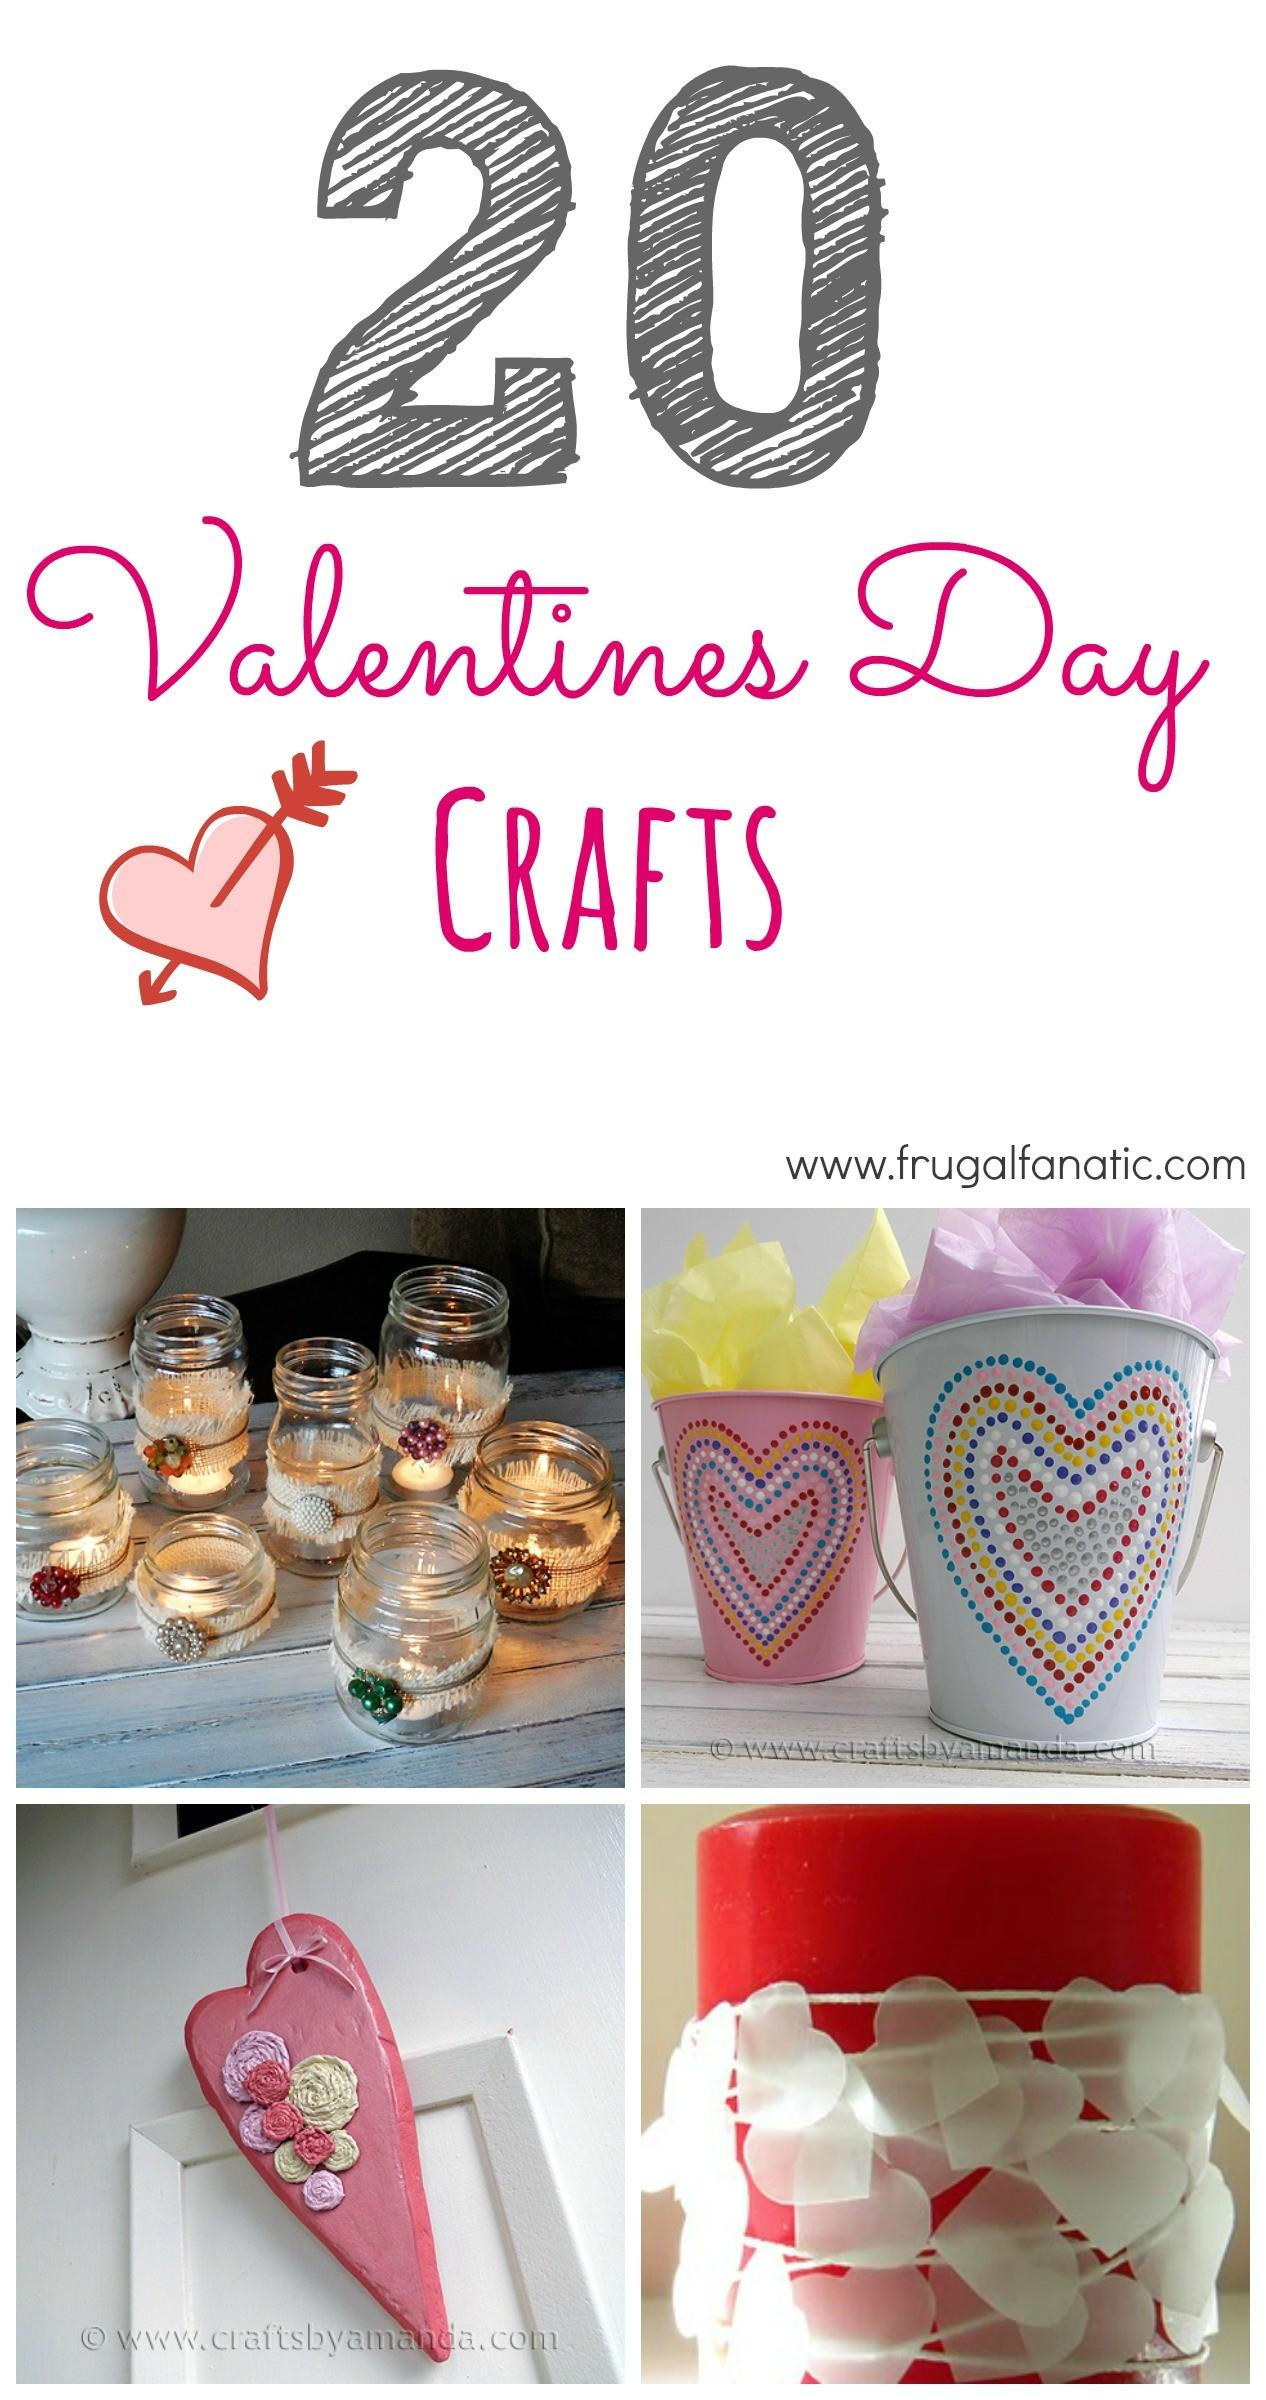 Valentines Day Crafts Frugal Fanatic